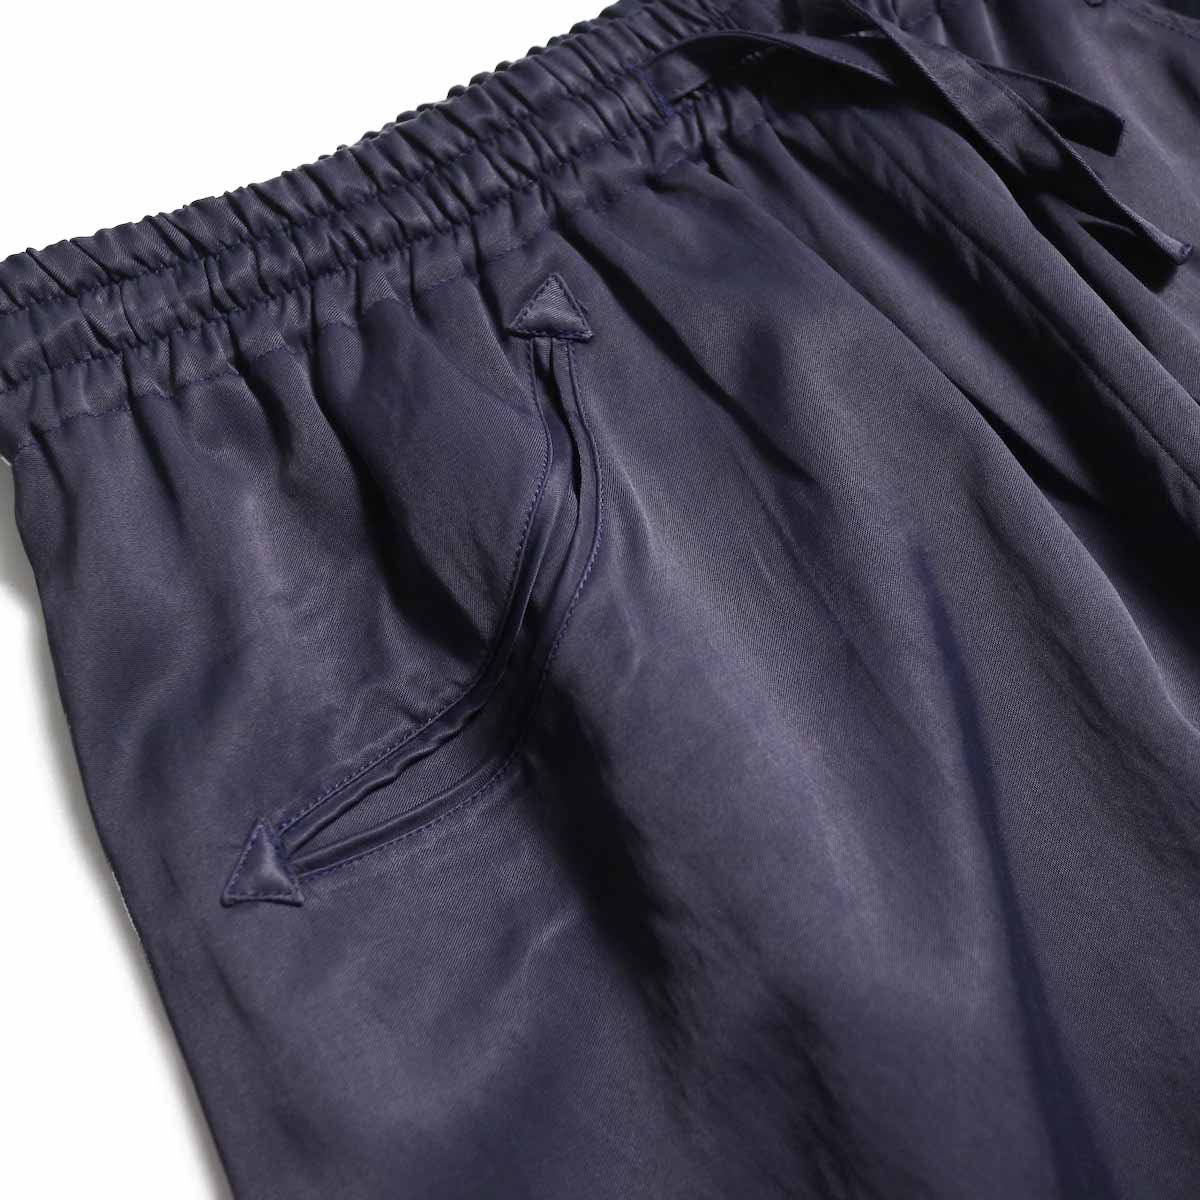 Needles / Fringe Cowboy Pant -R/C Twill Sateen (Purple) ポケット